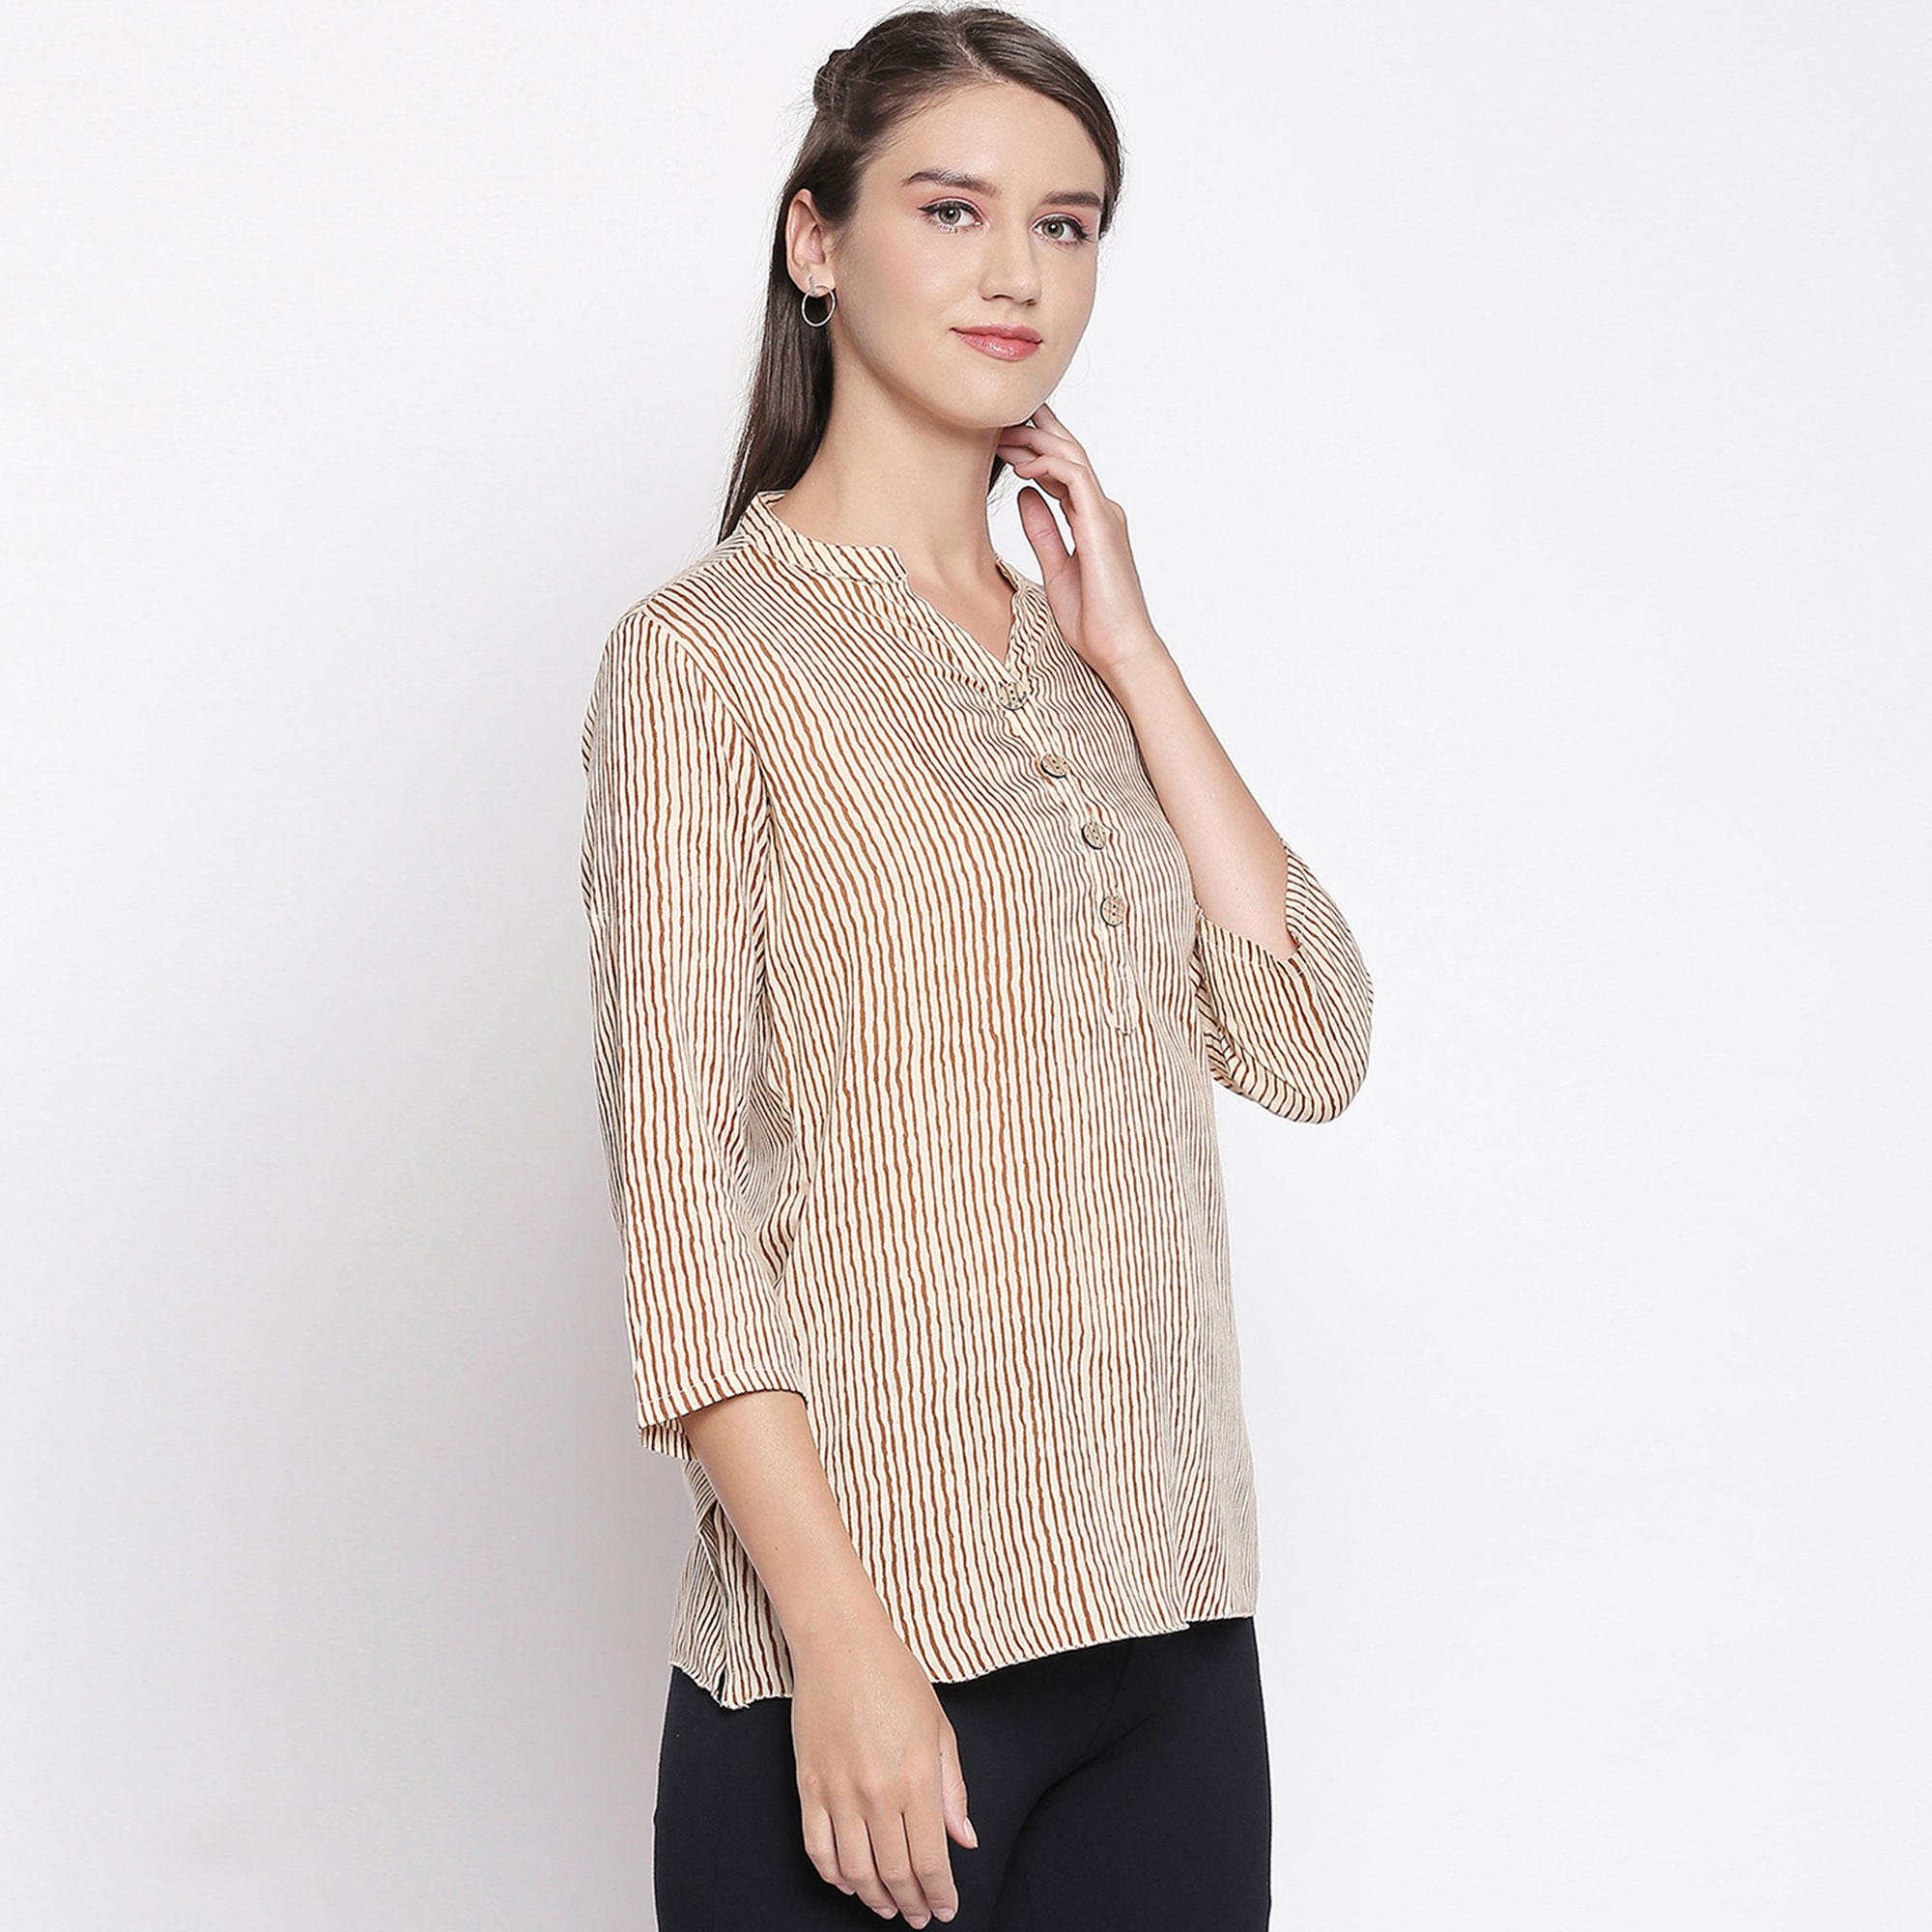 Flattering Beige-Red Colored Casual Printed Rayon Top